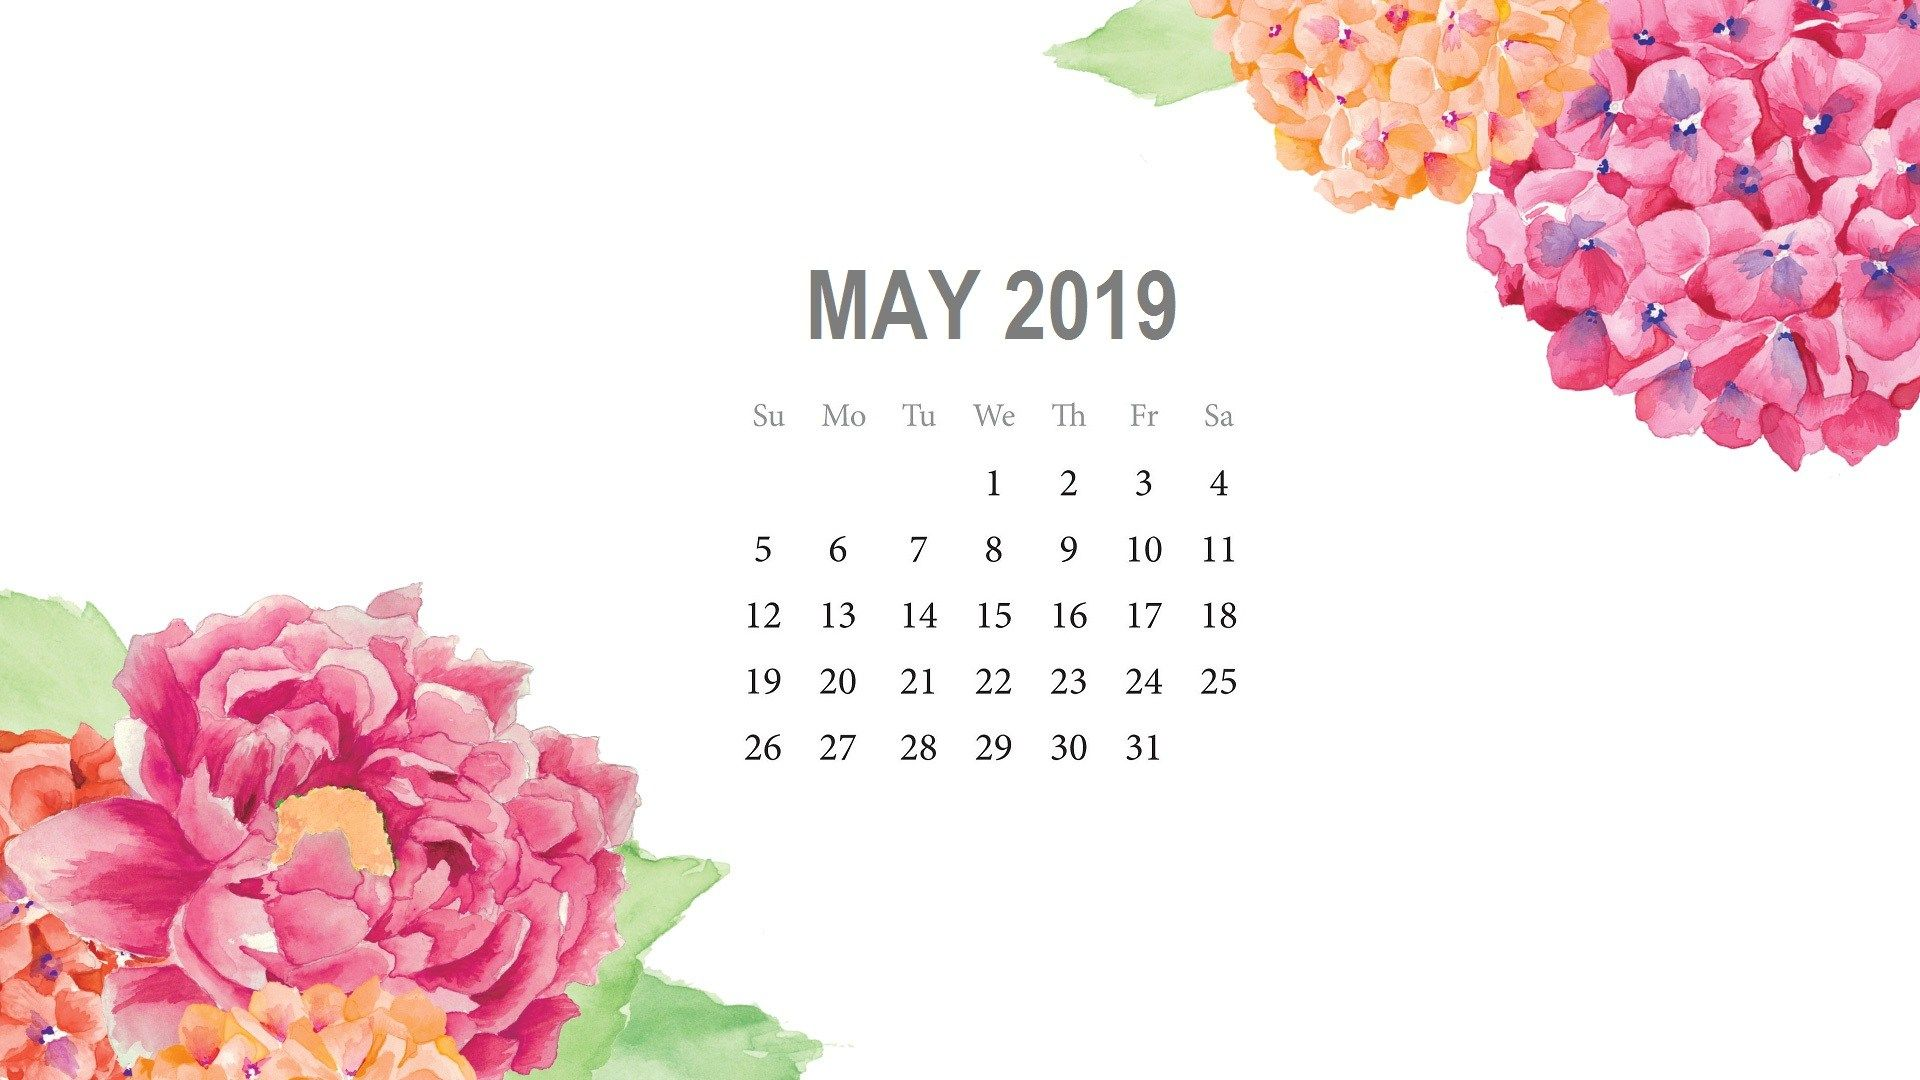 May 2019 Desktop Background Calendar Calendar wallpaper